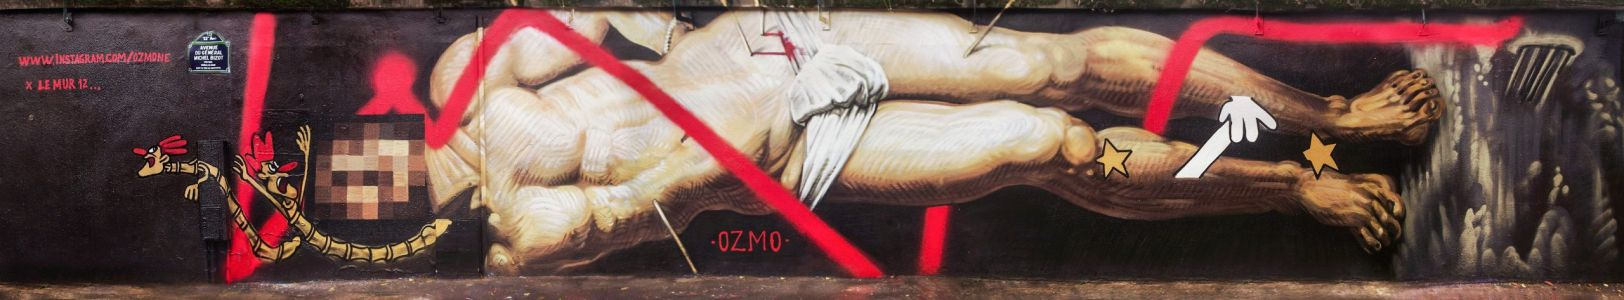 OZMO Mural for the World AIDS Day in Paris, France